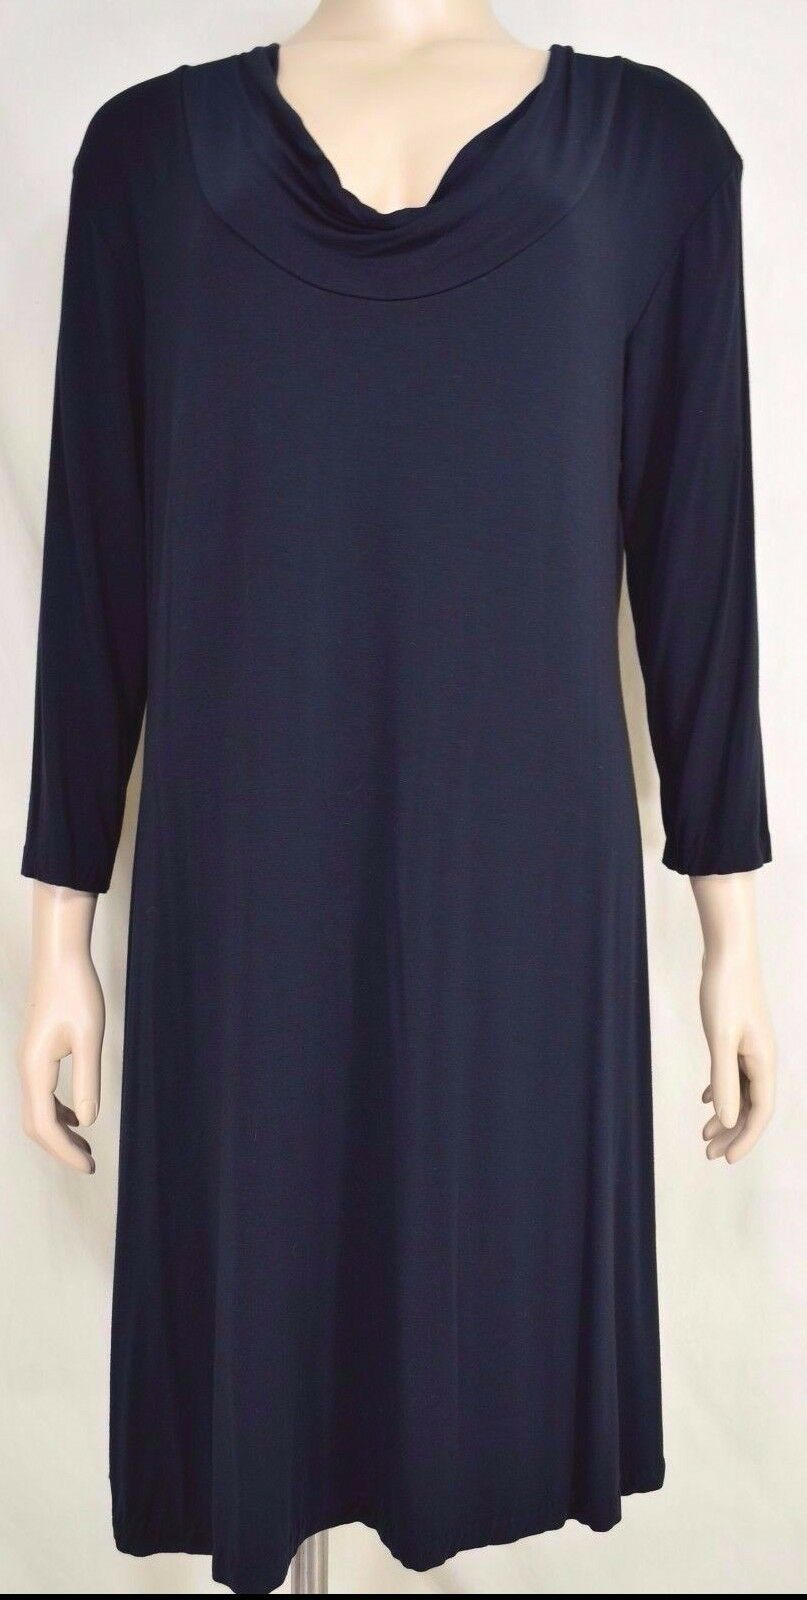 Primary image for Biondo dress NWT SZ XL shift black 3/4 sleeve rayon lycra USA cowl neckline LBD.